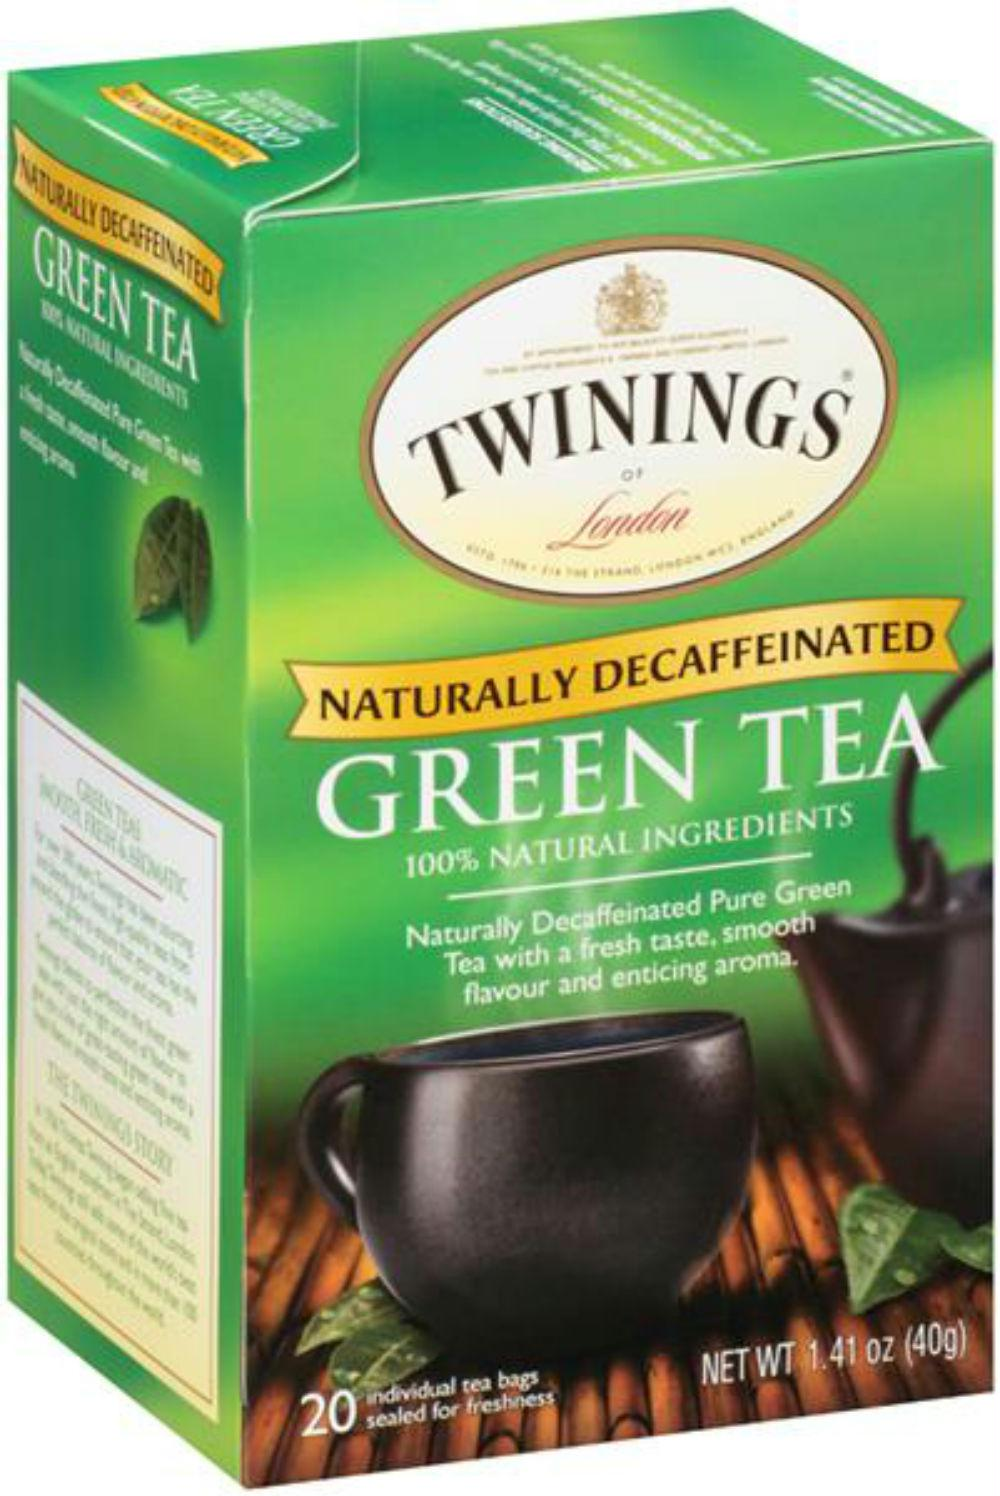 Twinings Of London: Tea Decaffeinated Green Tea, 20 Tea Bags, 1.23 Oz